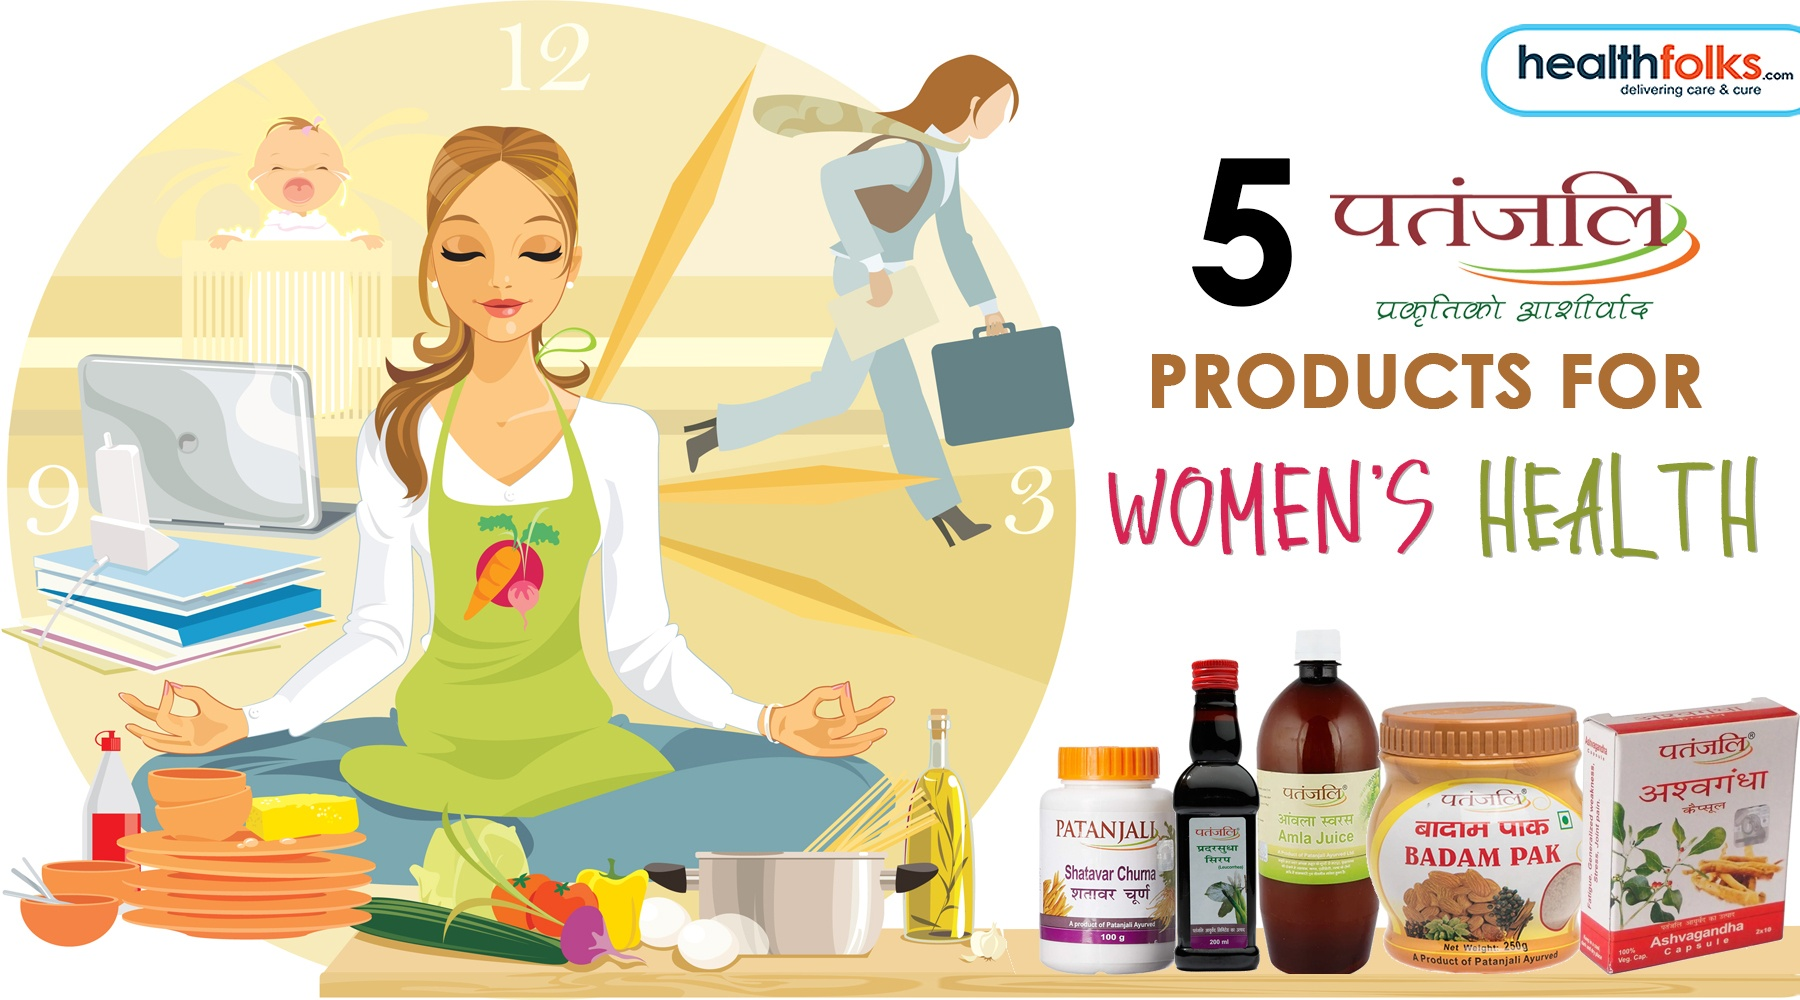 What are the popular Patanjali products for women's health? - Quora